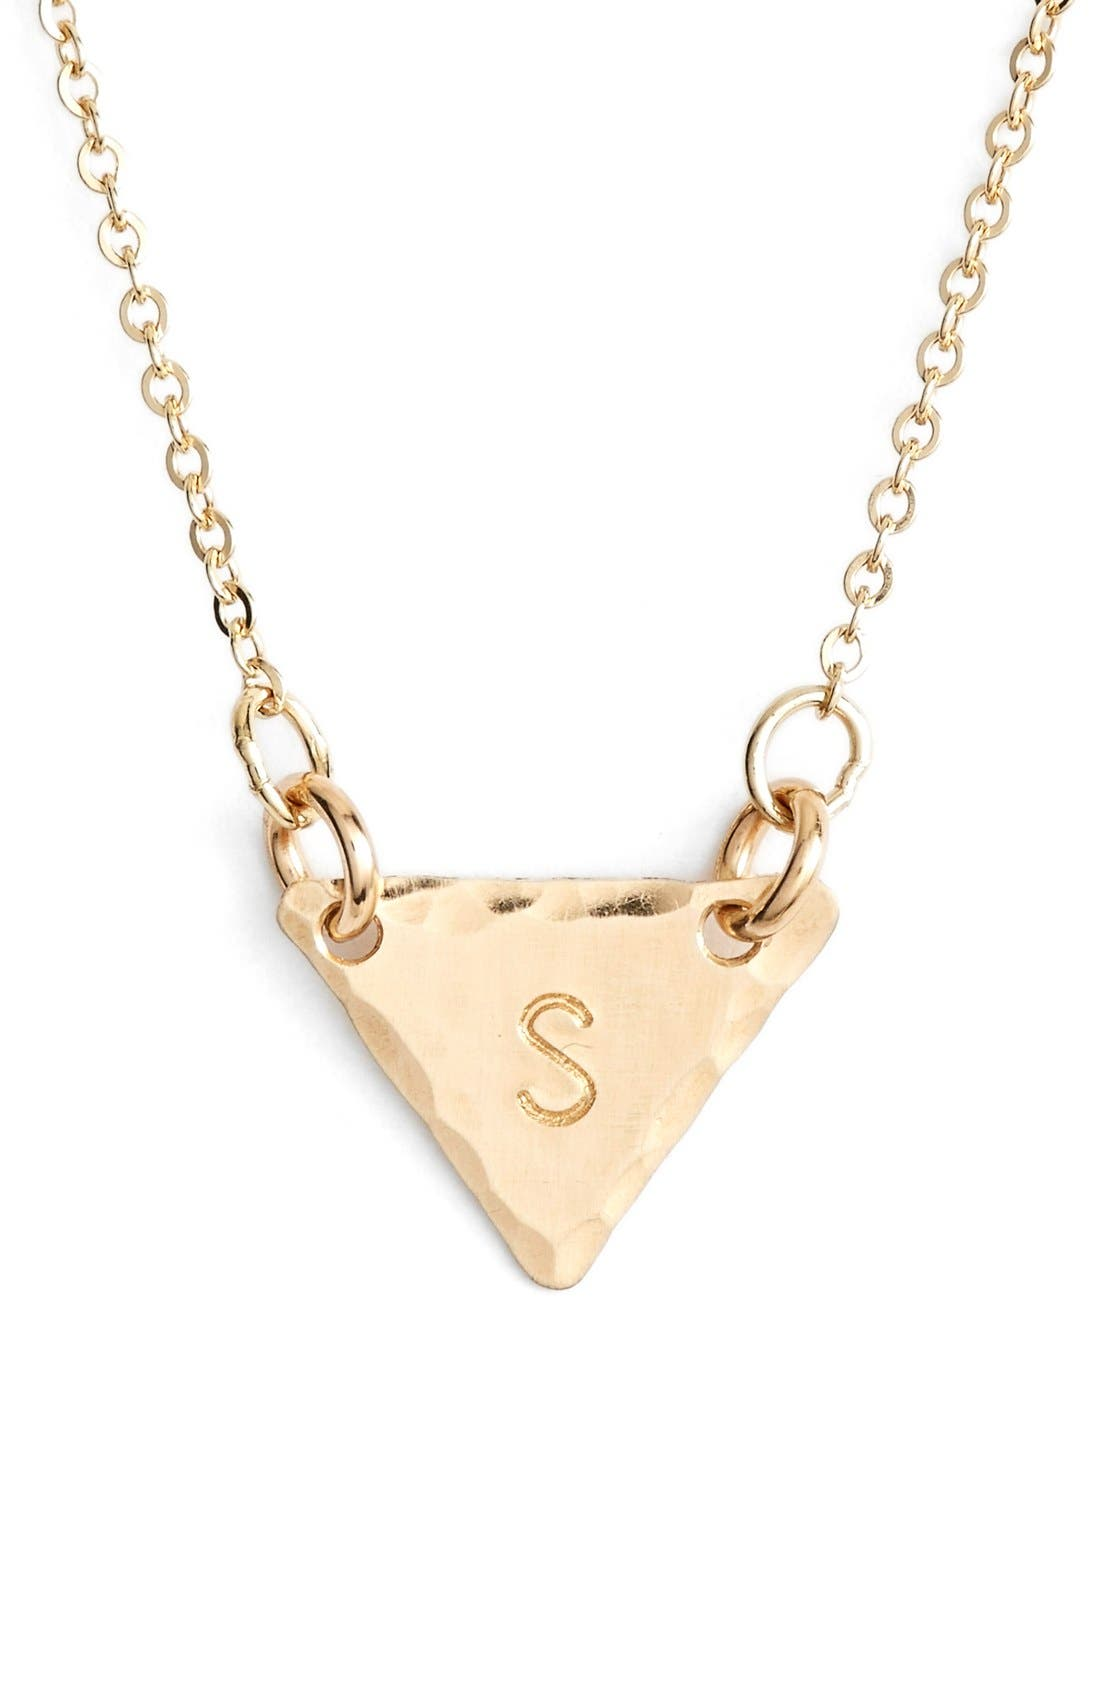 14k-Gold Fill Initial Triangle Necklace,                         Main,                         color, 14K Gold Fill S